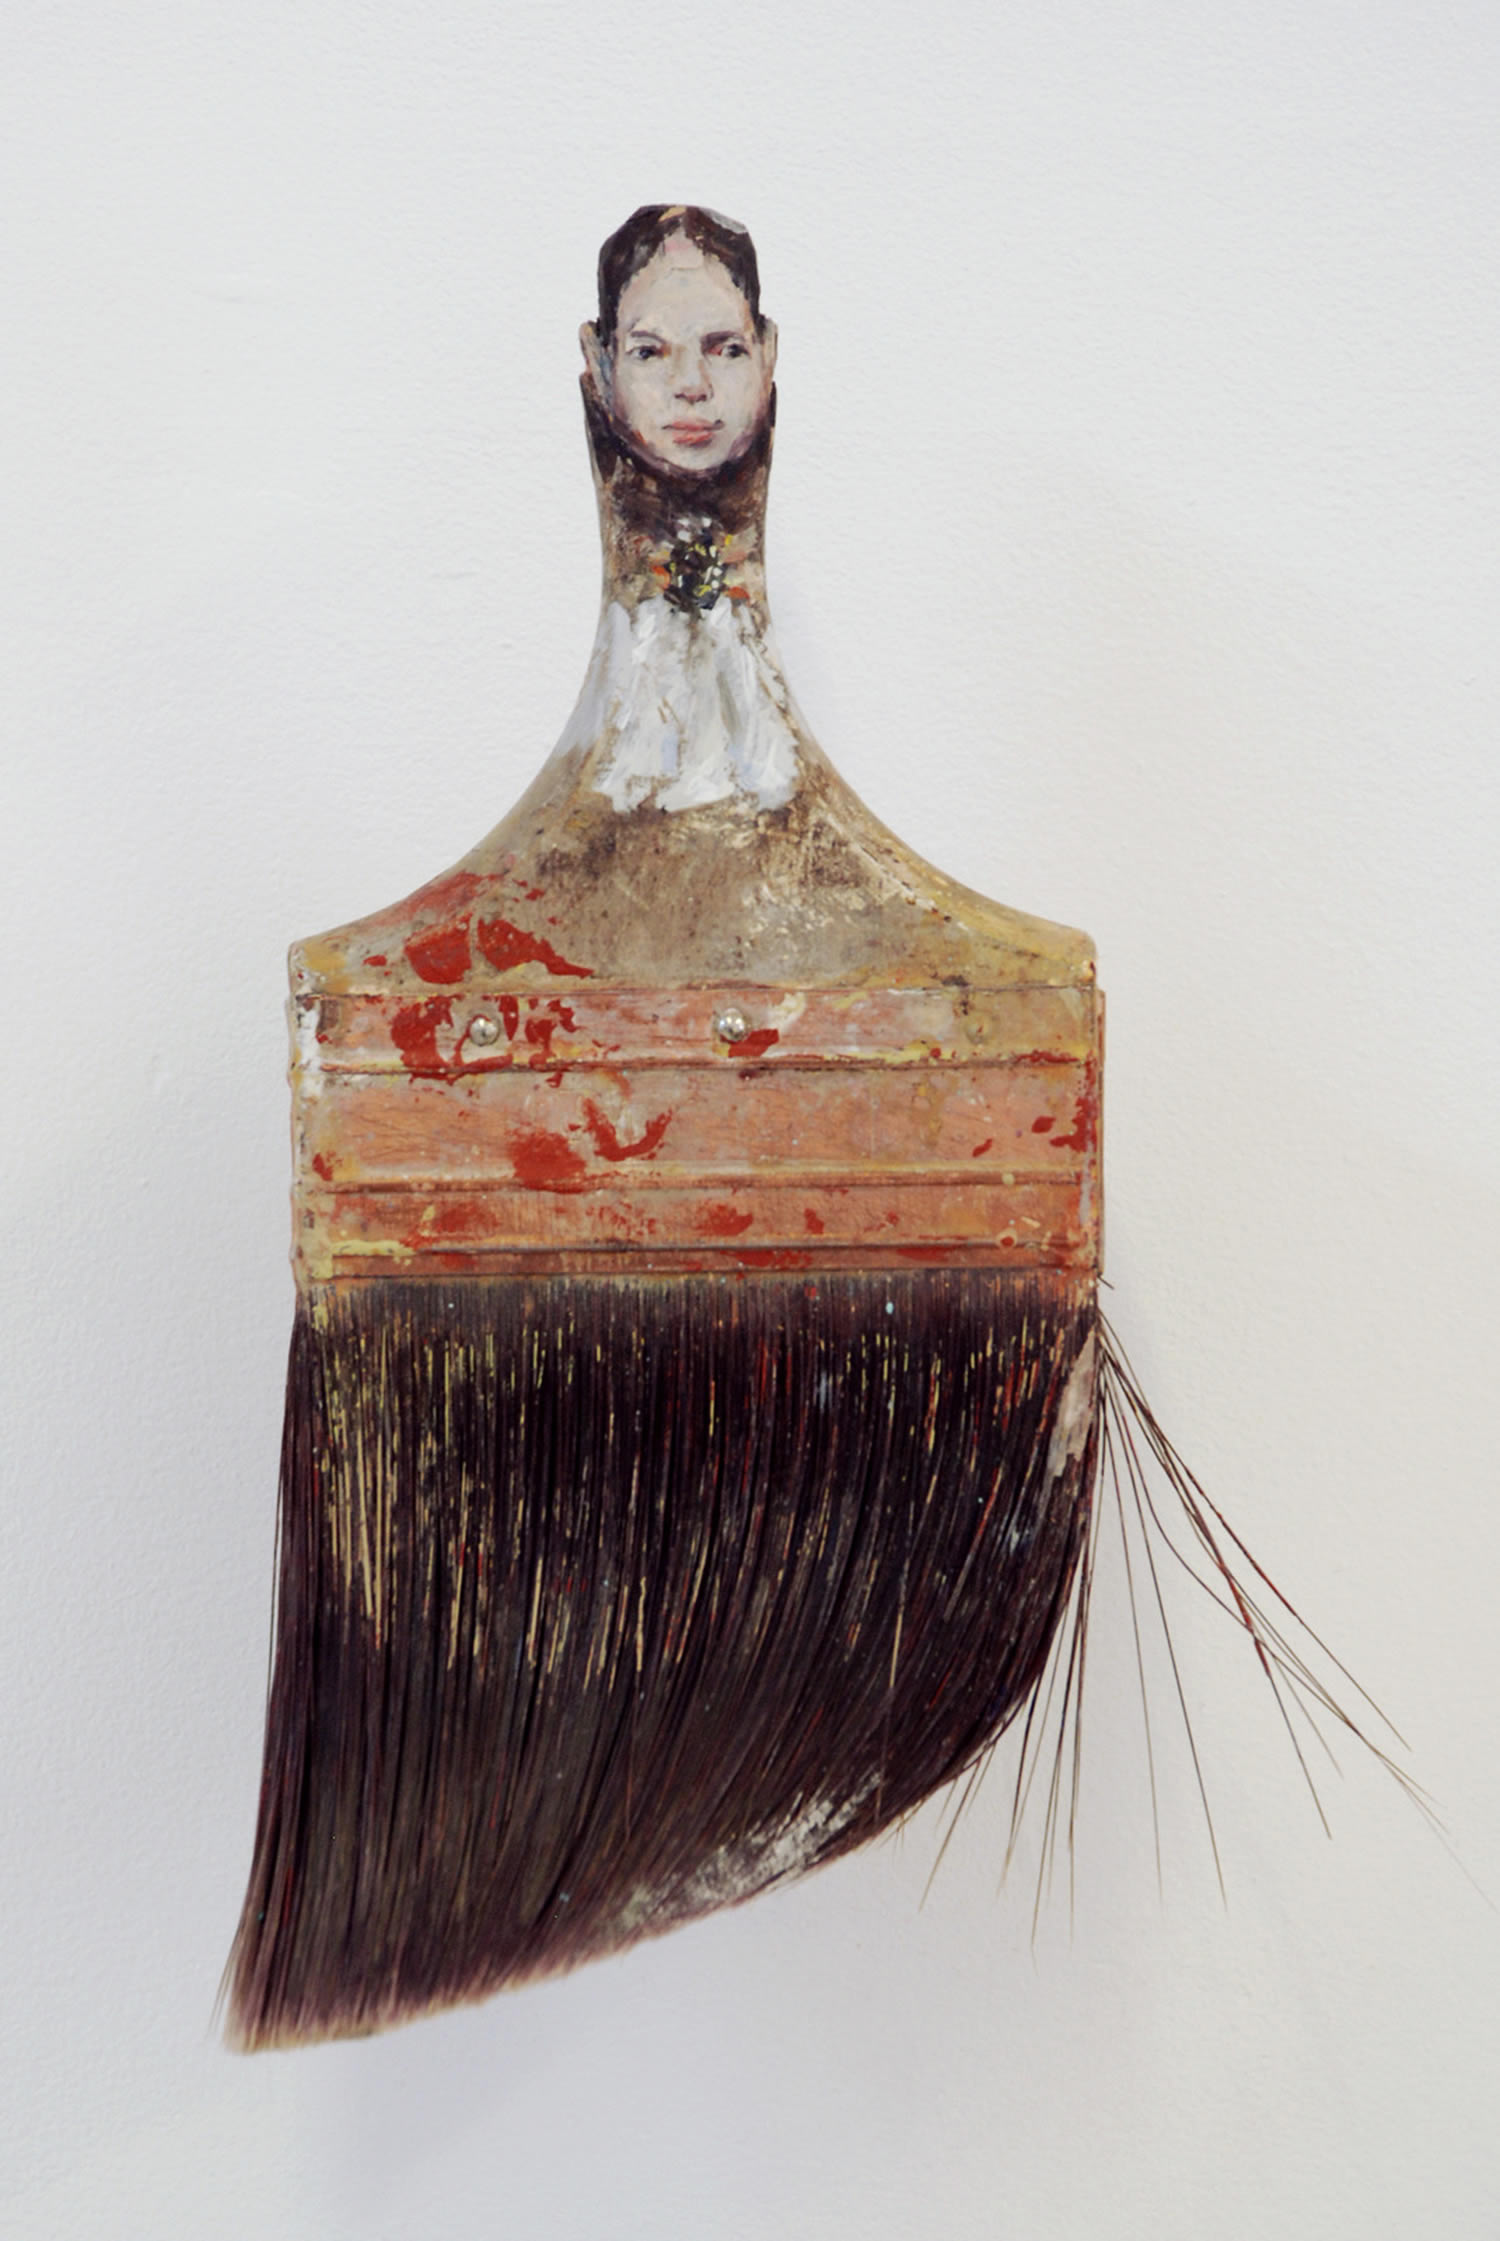 paintbrush portrait by Rebecca Szeto